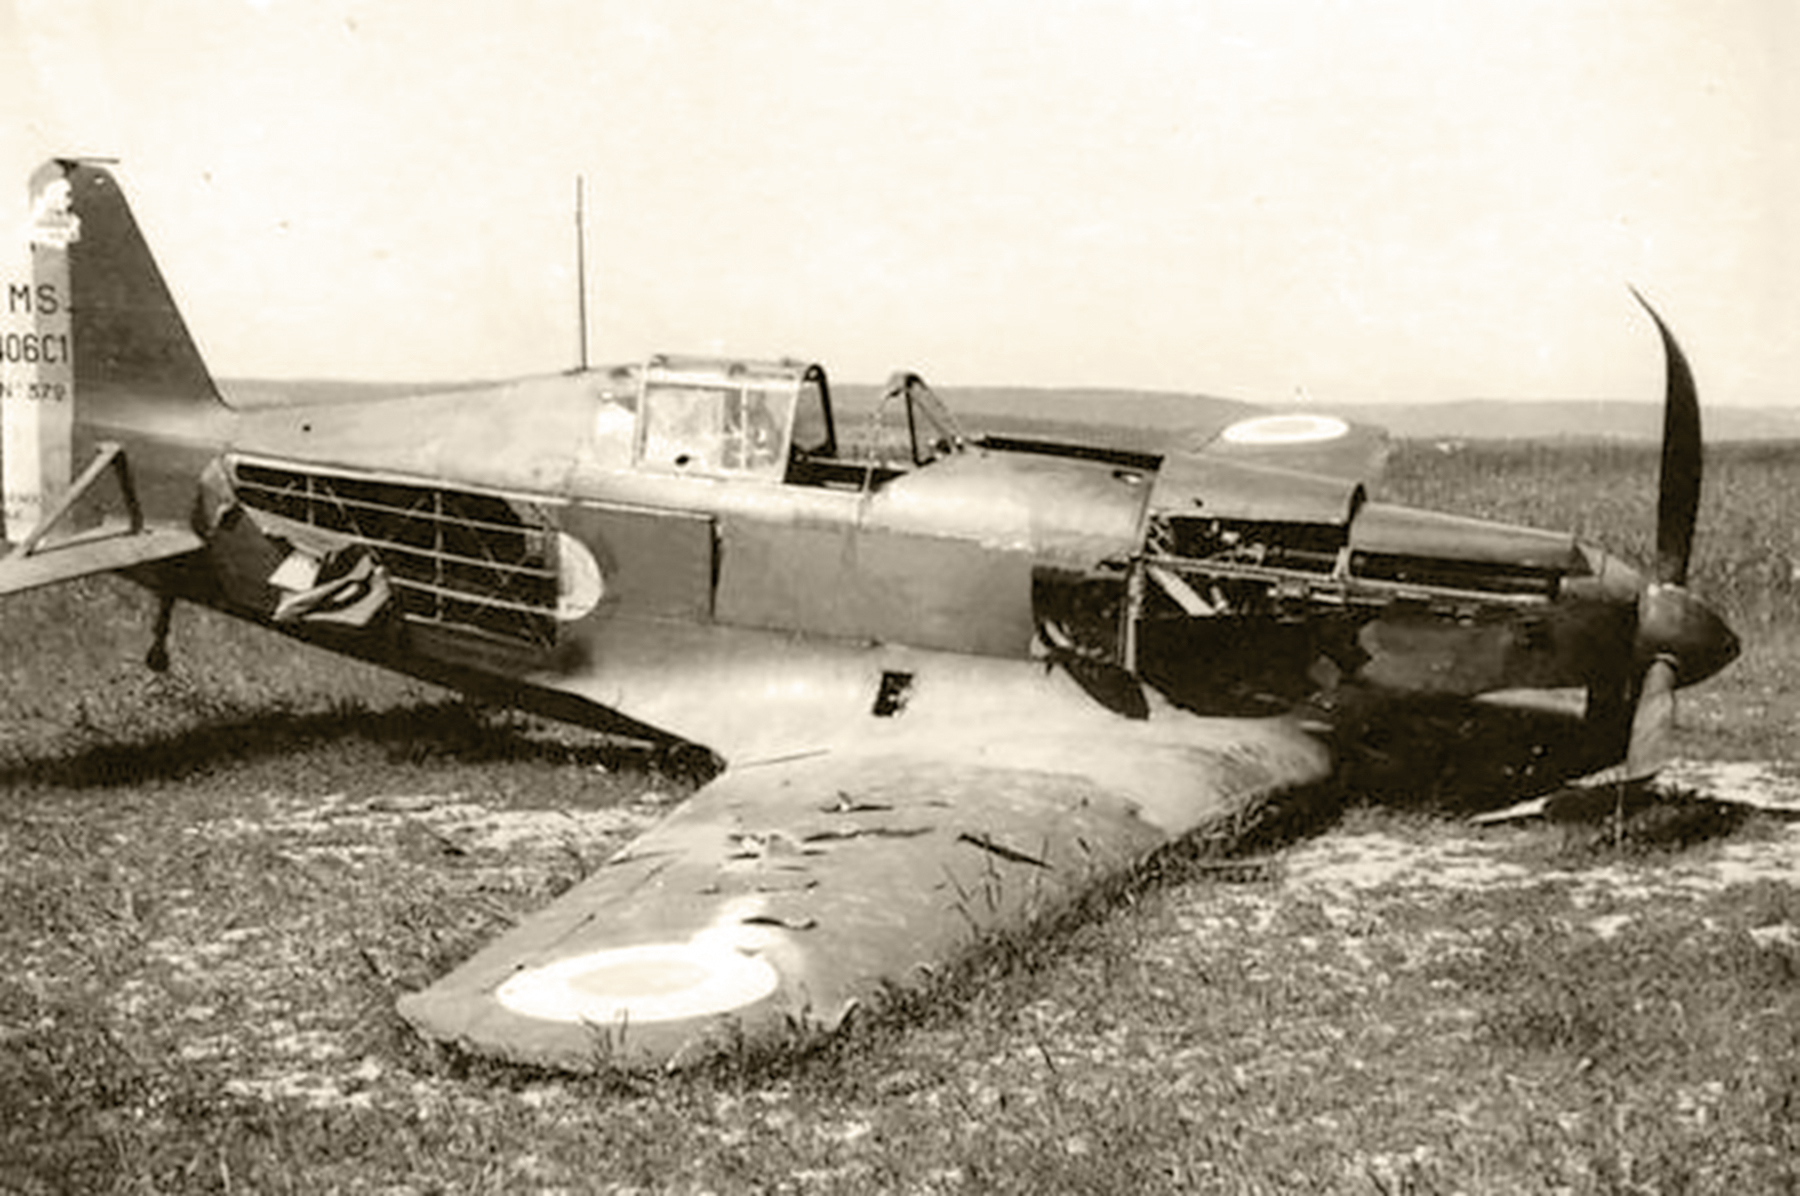 French Airforce Morane Saulnier MS 406C1 sn372 GC II.6 force landed France 1940 web 01